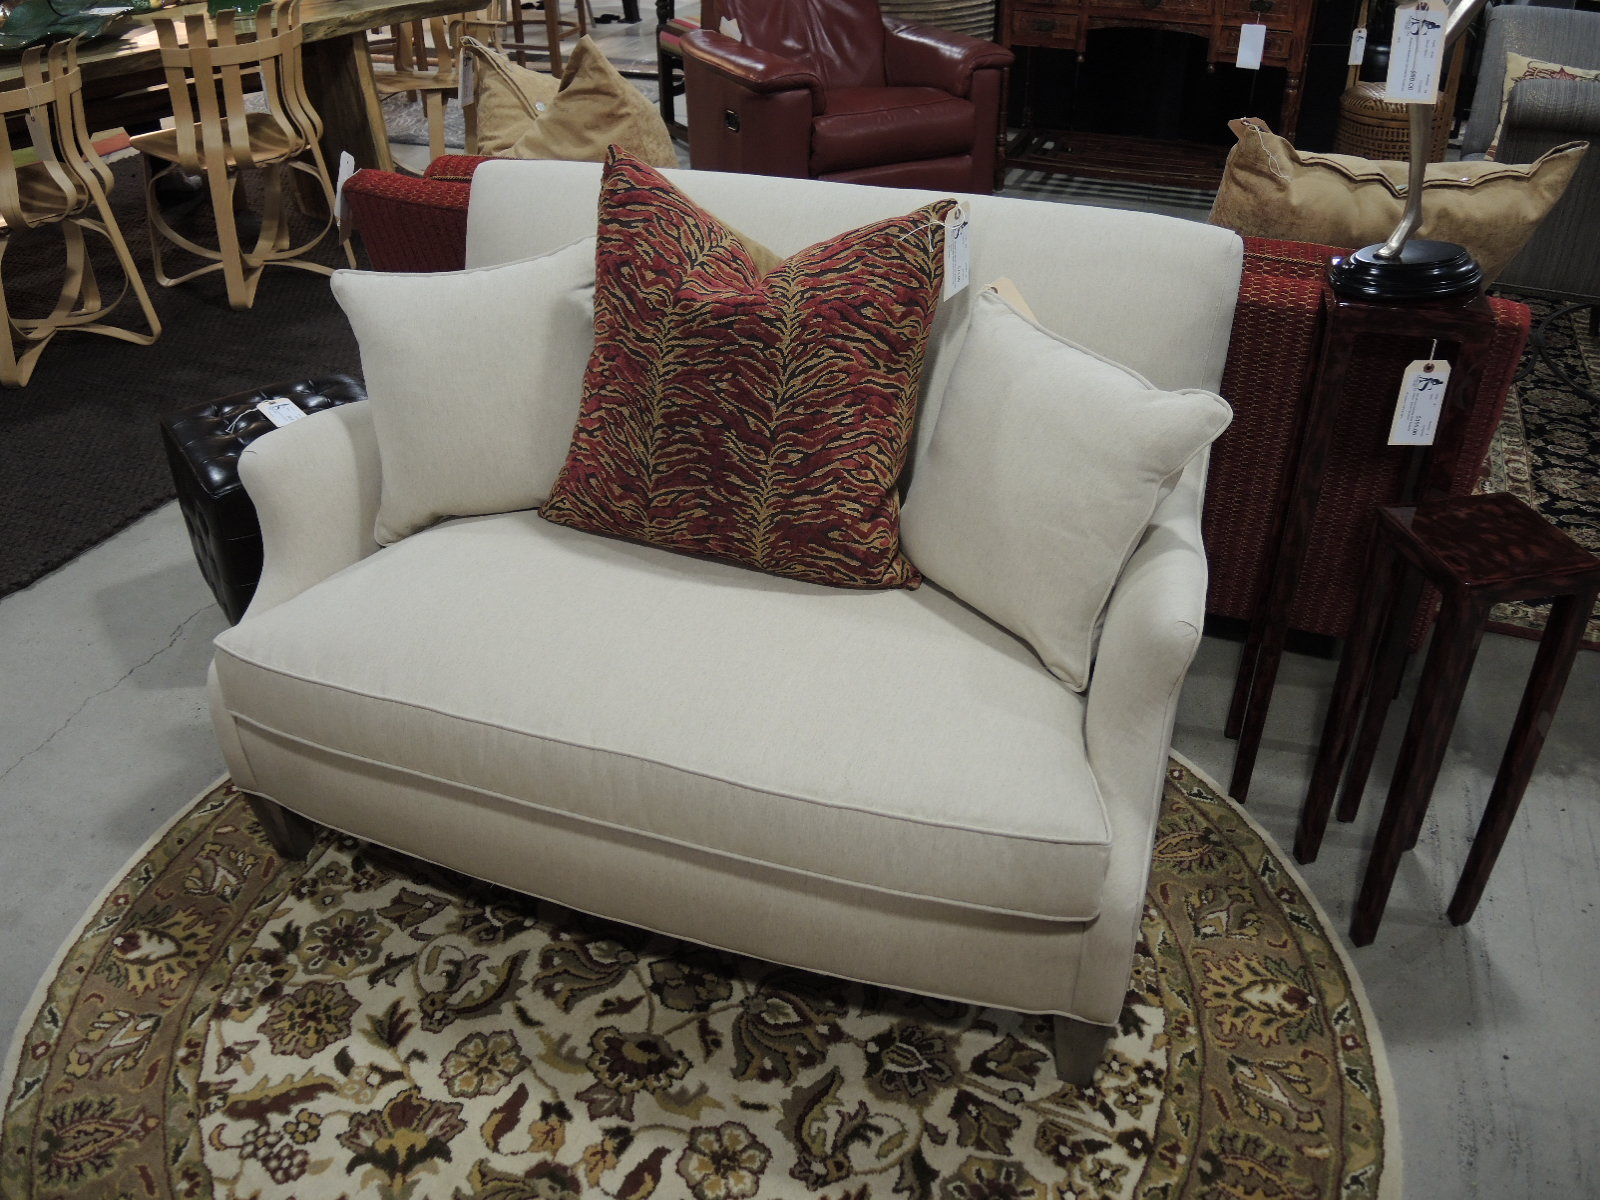 dellarobbia seams to fit home brand new delivered to the showroom wrapped and crated we have this pristine hudson settee from ballard designs with down wrapped foam cushions